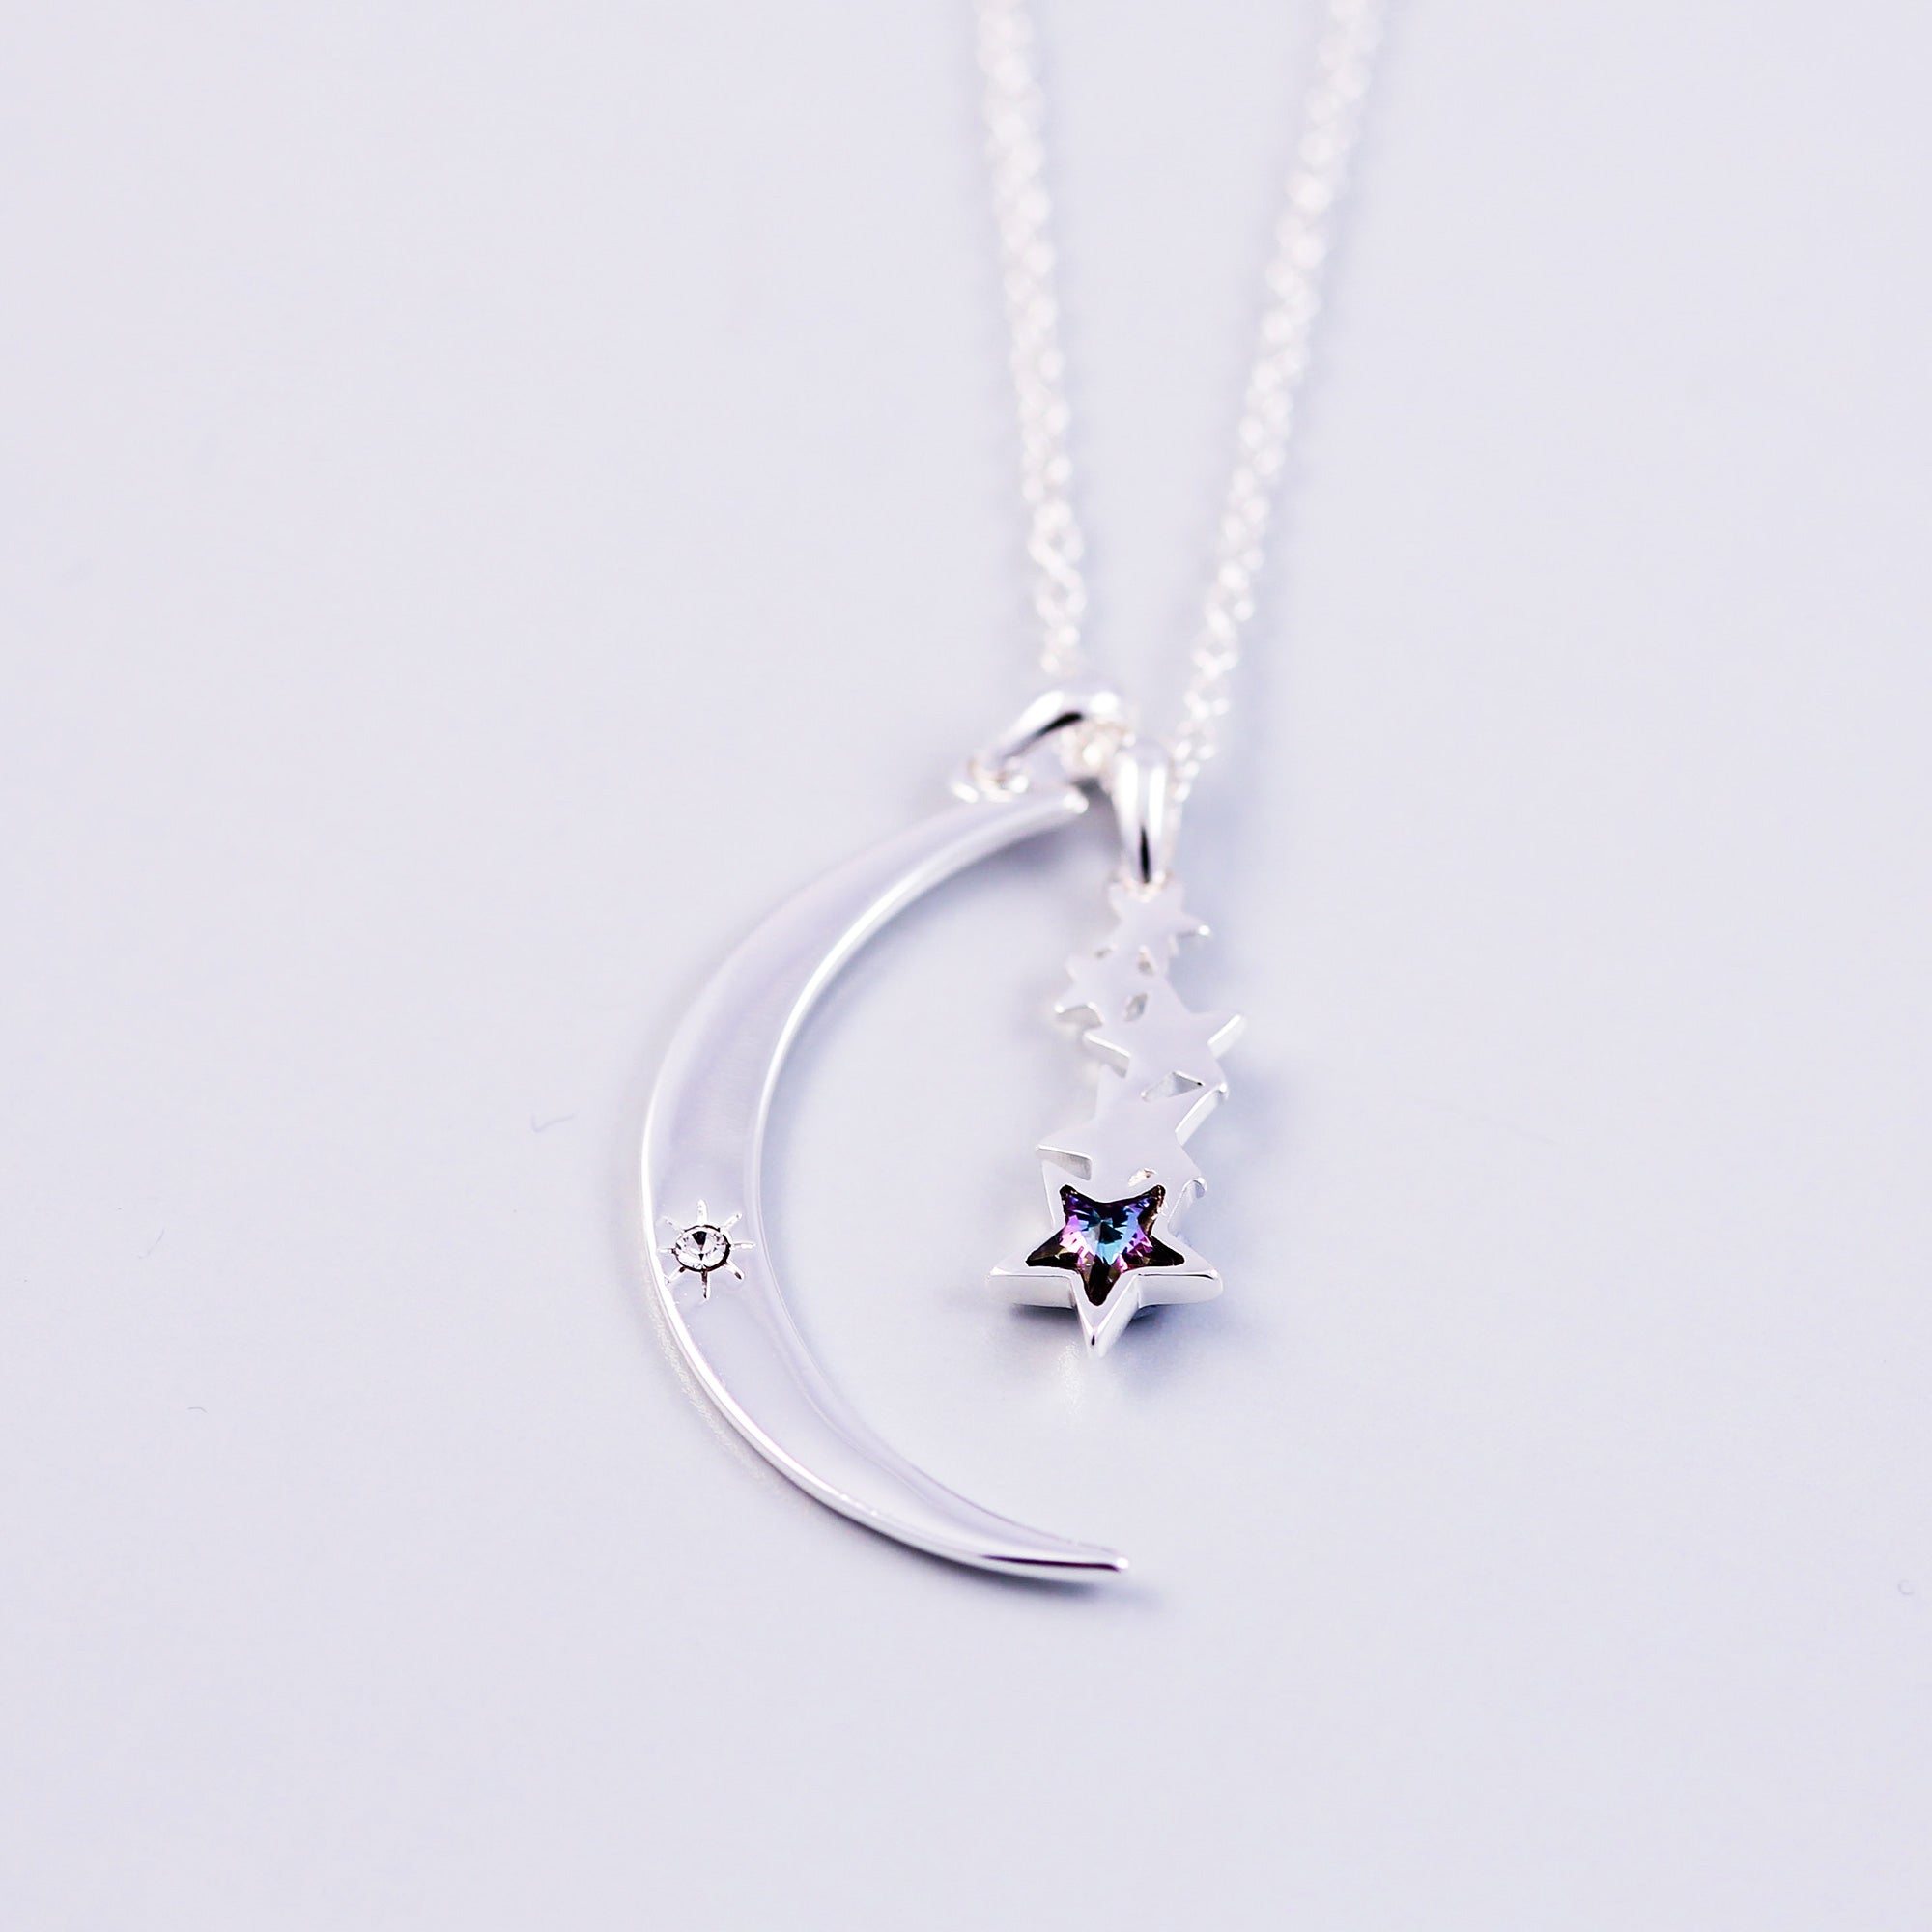 Moon & Shooting Star Necklace | Moon and Star Pendant | Moon Necklace | Silver Moon and Star Necklace